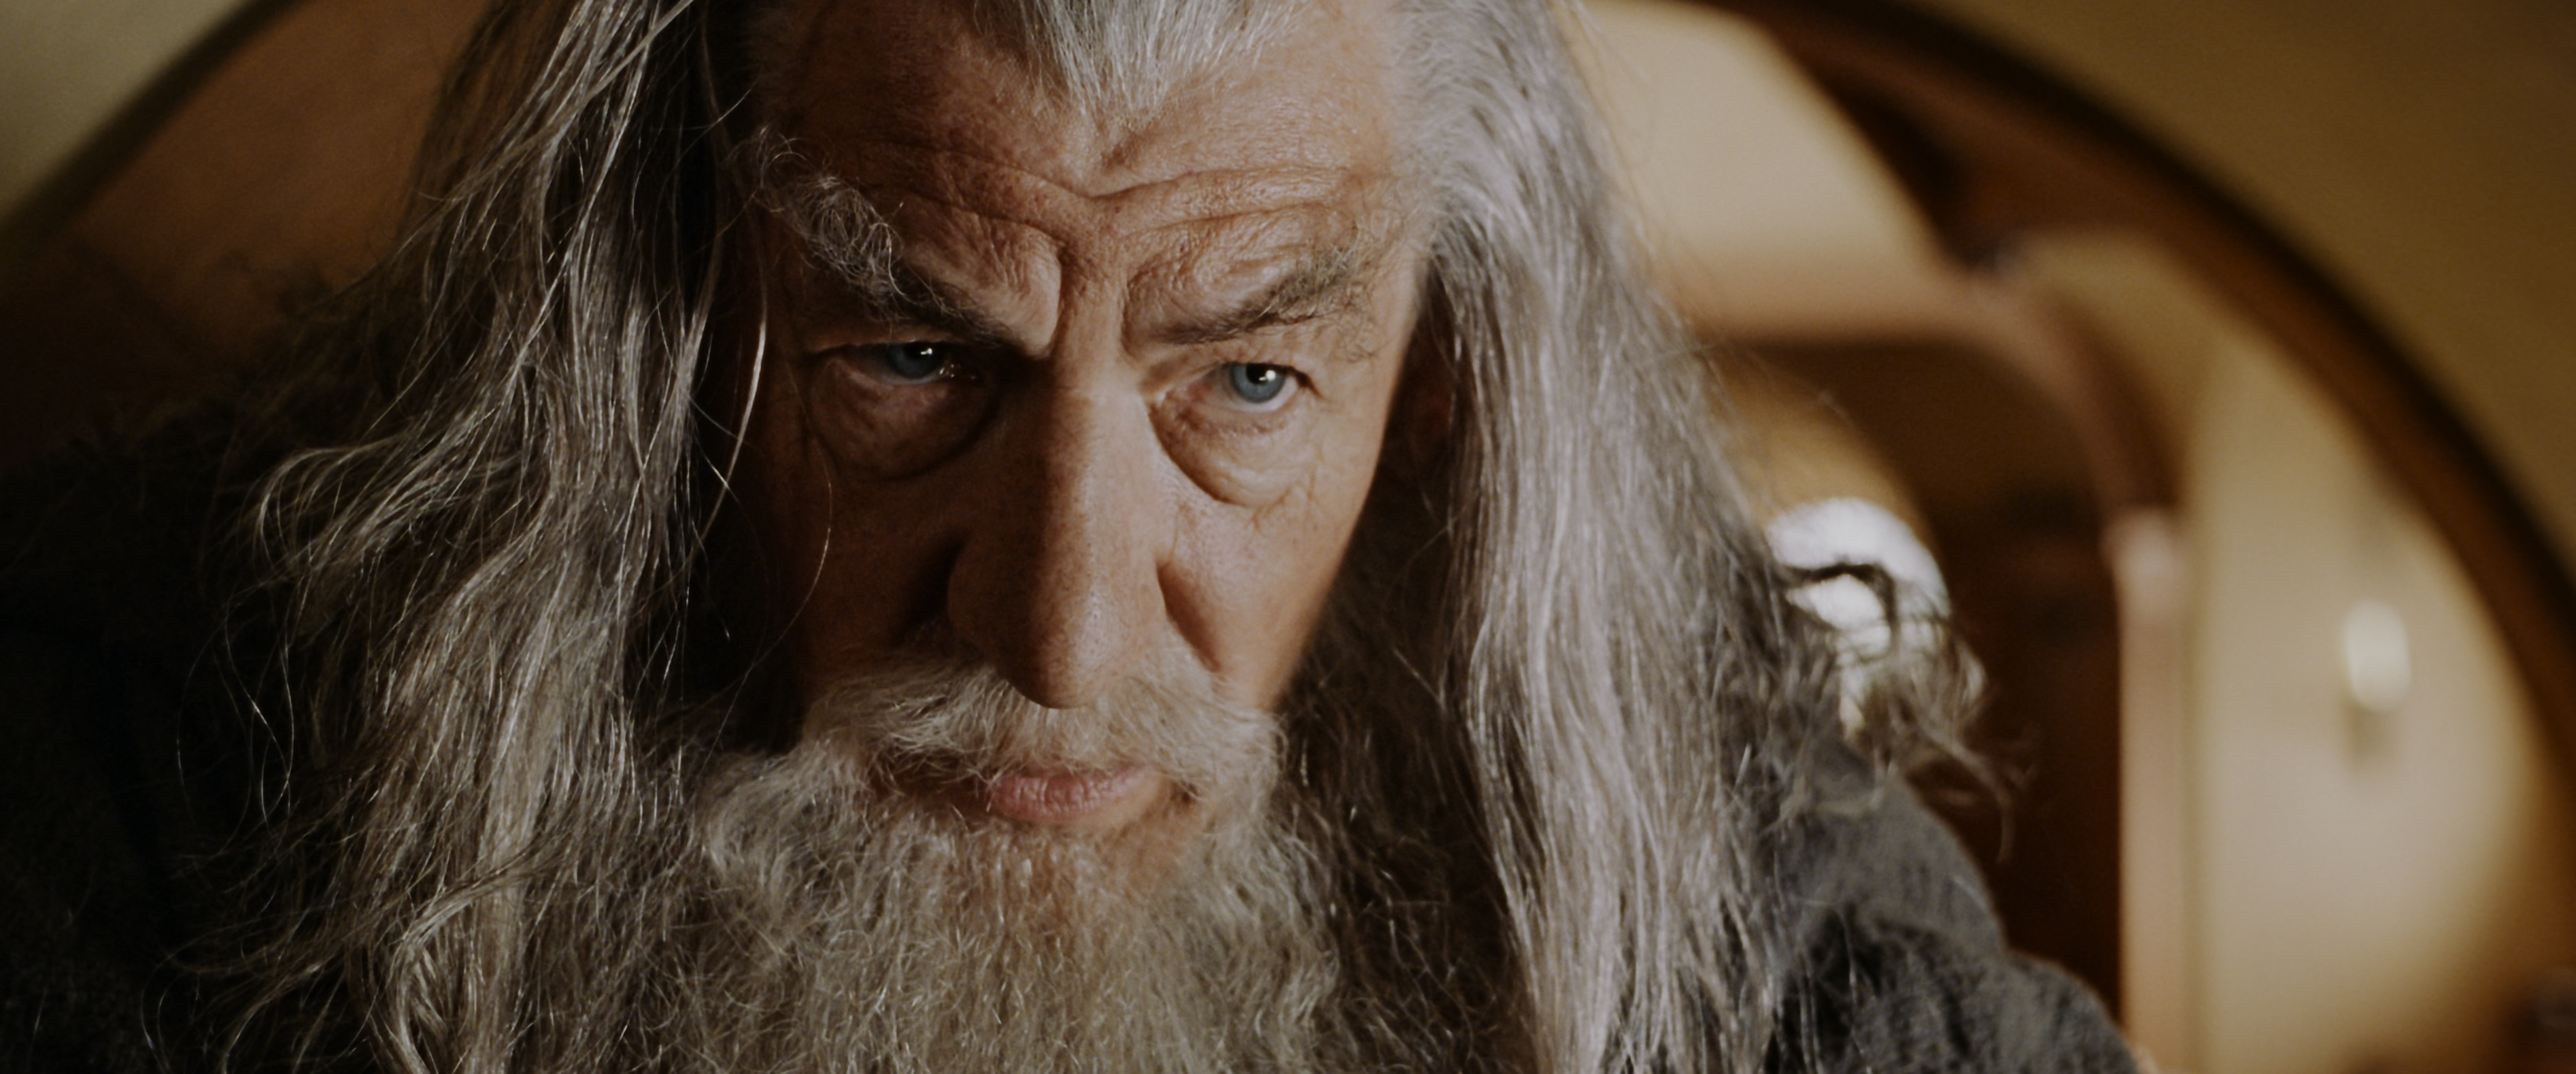 Gandalf in close up in Bilbo's house in the shire in Fellowship of the Ring Lord of the Rings